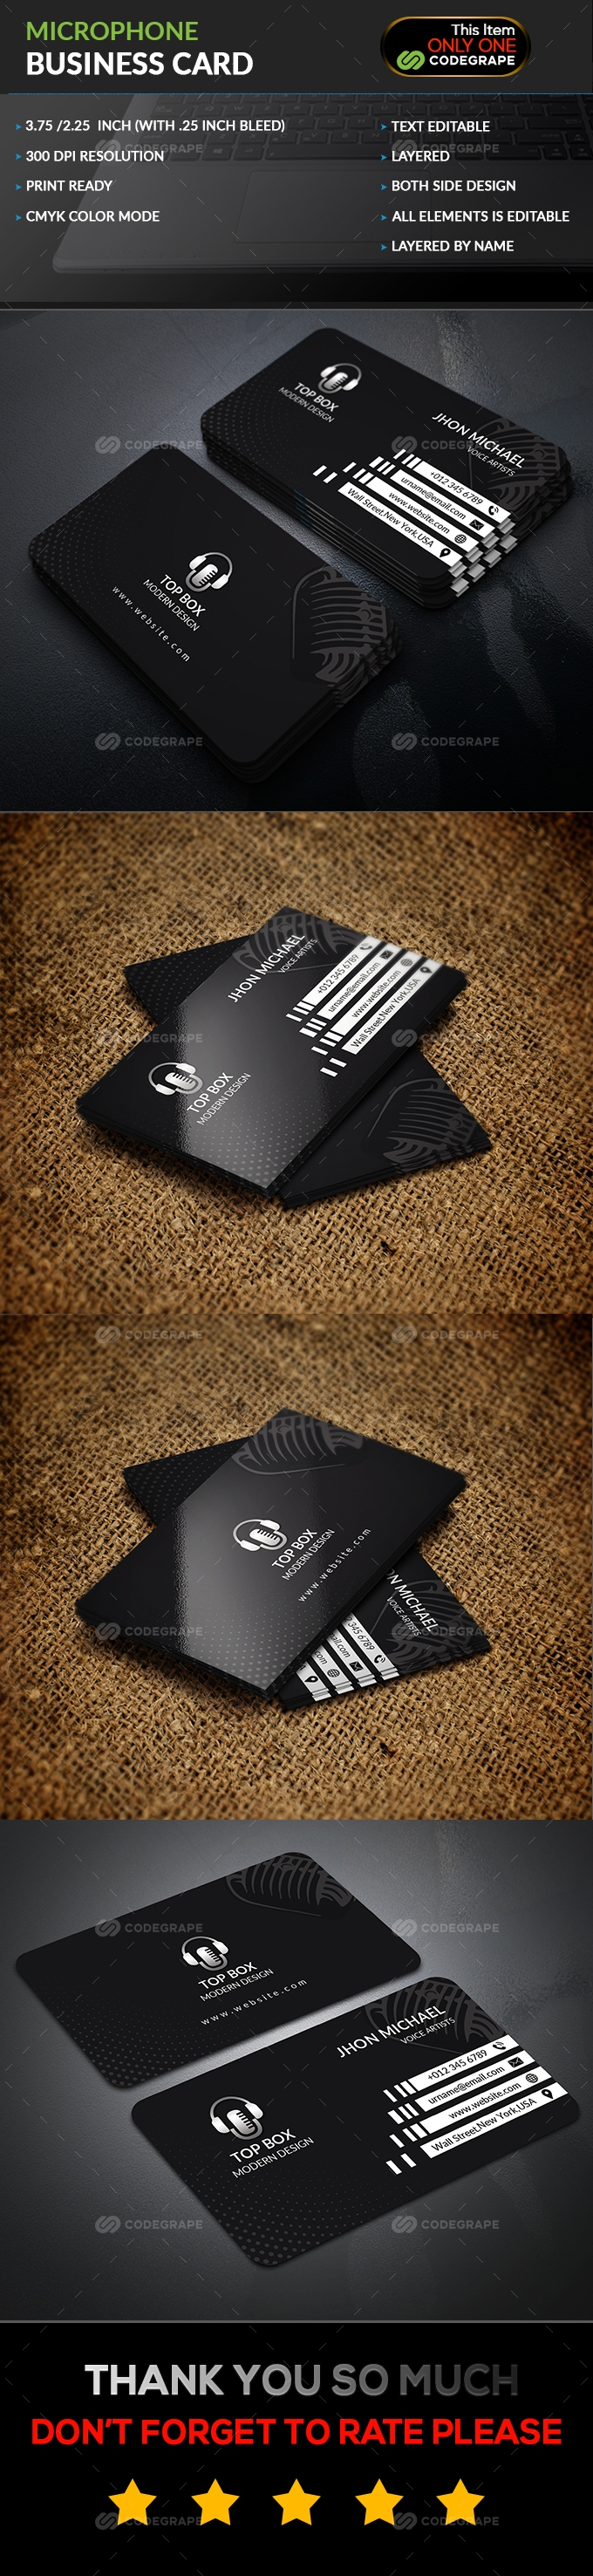 Microphone Business Card